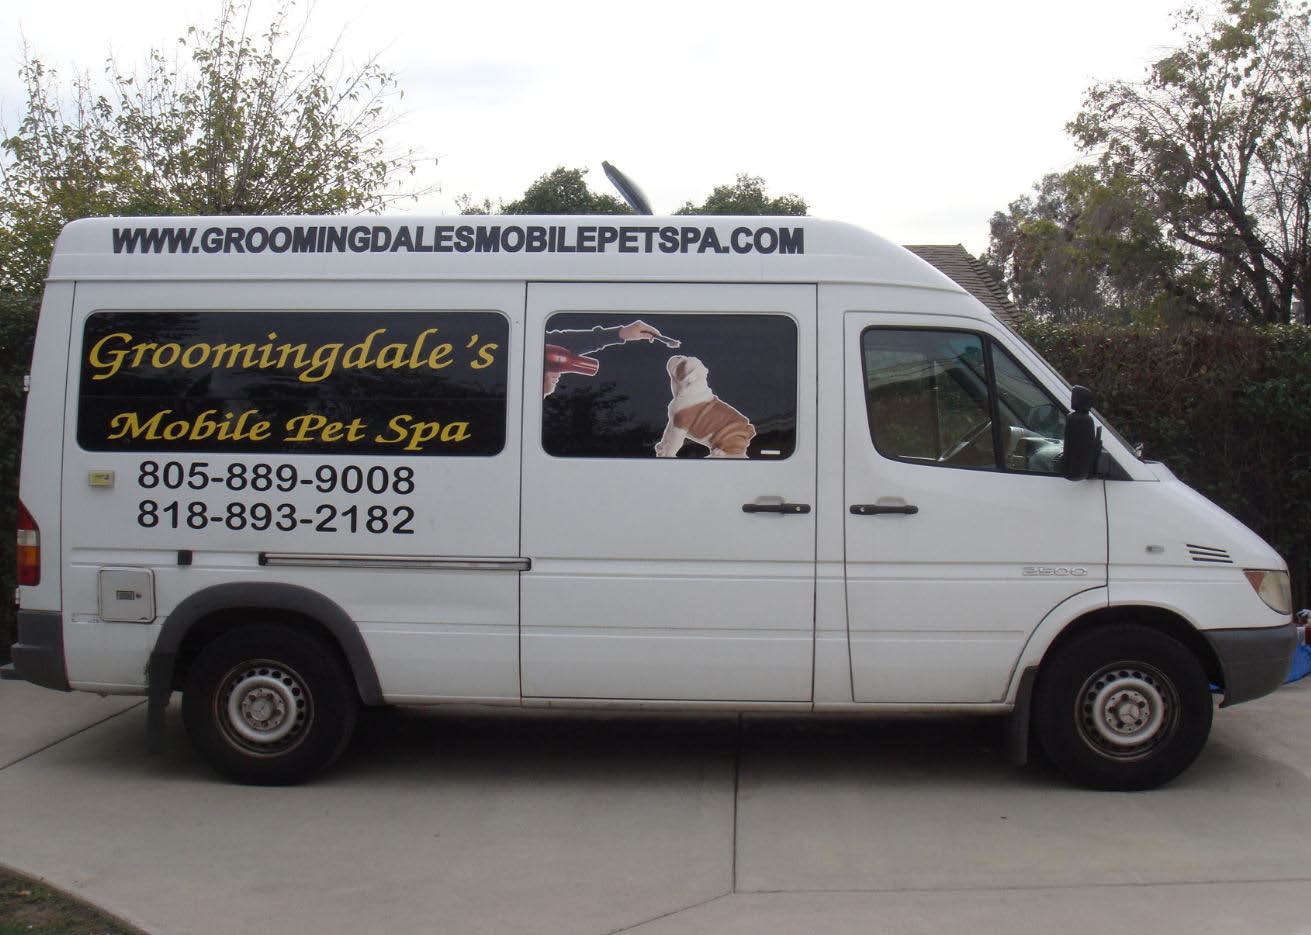 Groomingdale's Mobile Pet Spa mobile spa exterior